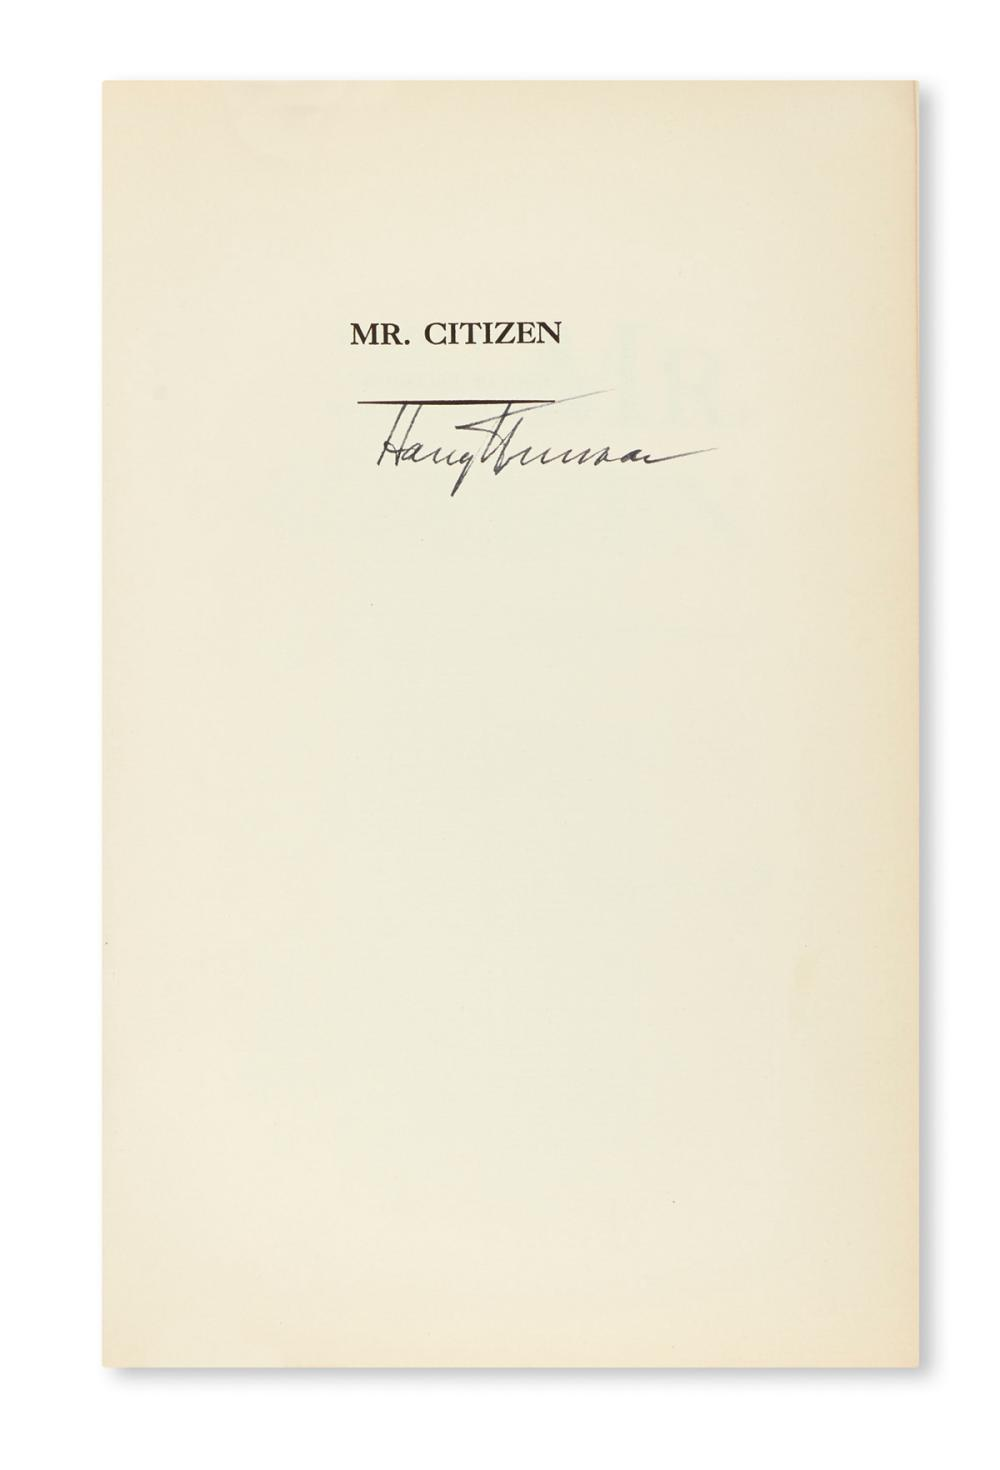 TRUMAN, HARRY S. Mr. Citizen. Signed, twice (on each of two half-title pages), and Inscribed on the second half-title: